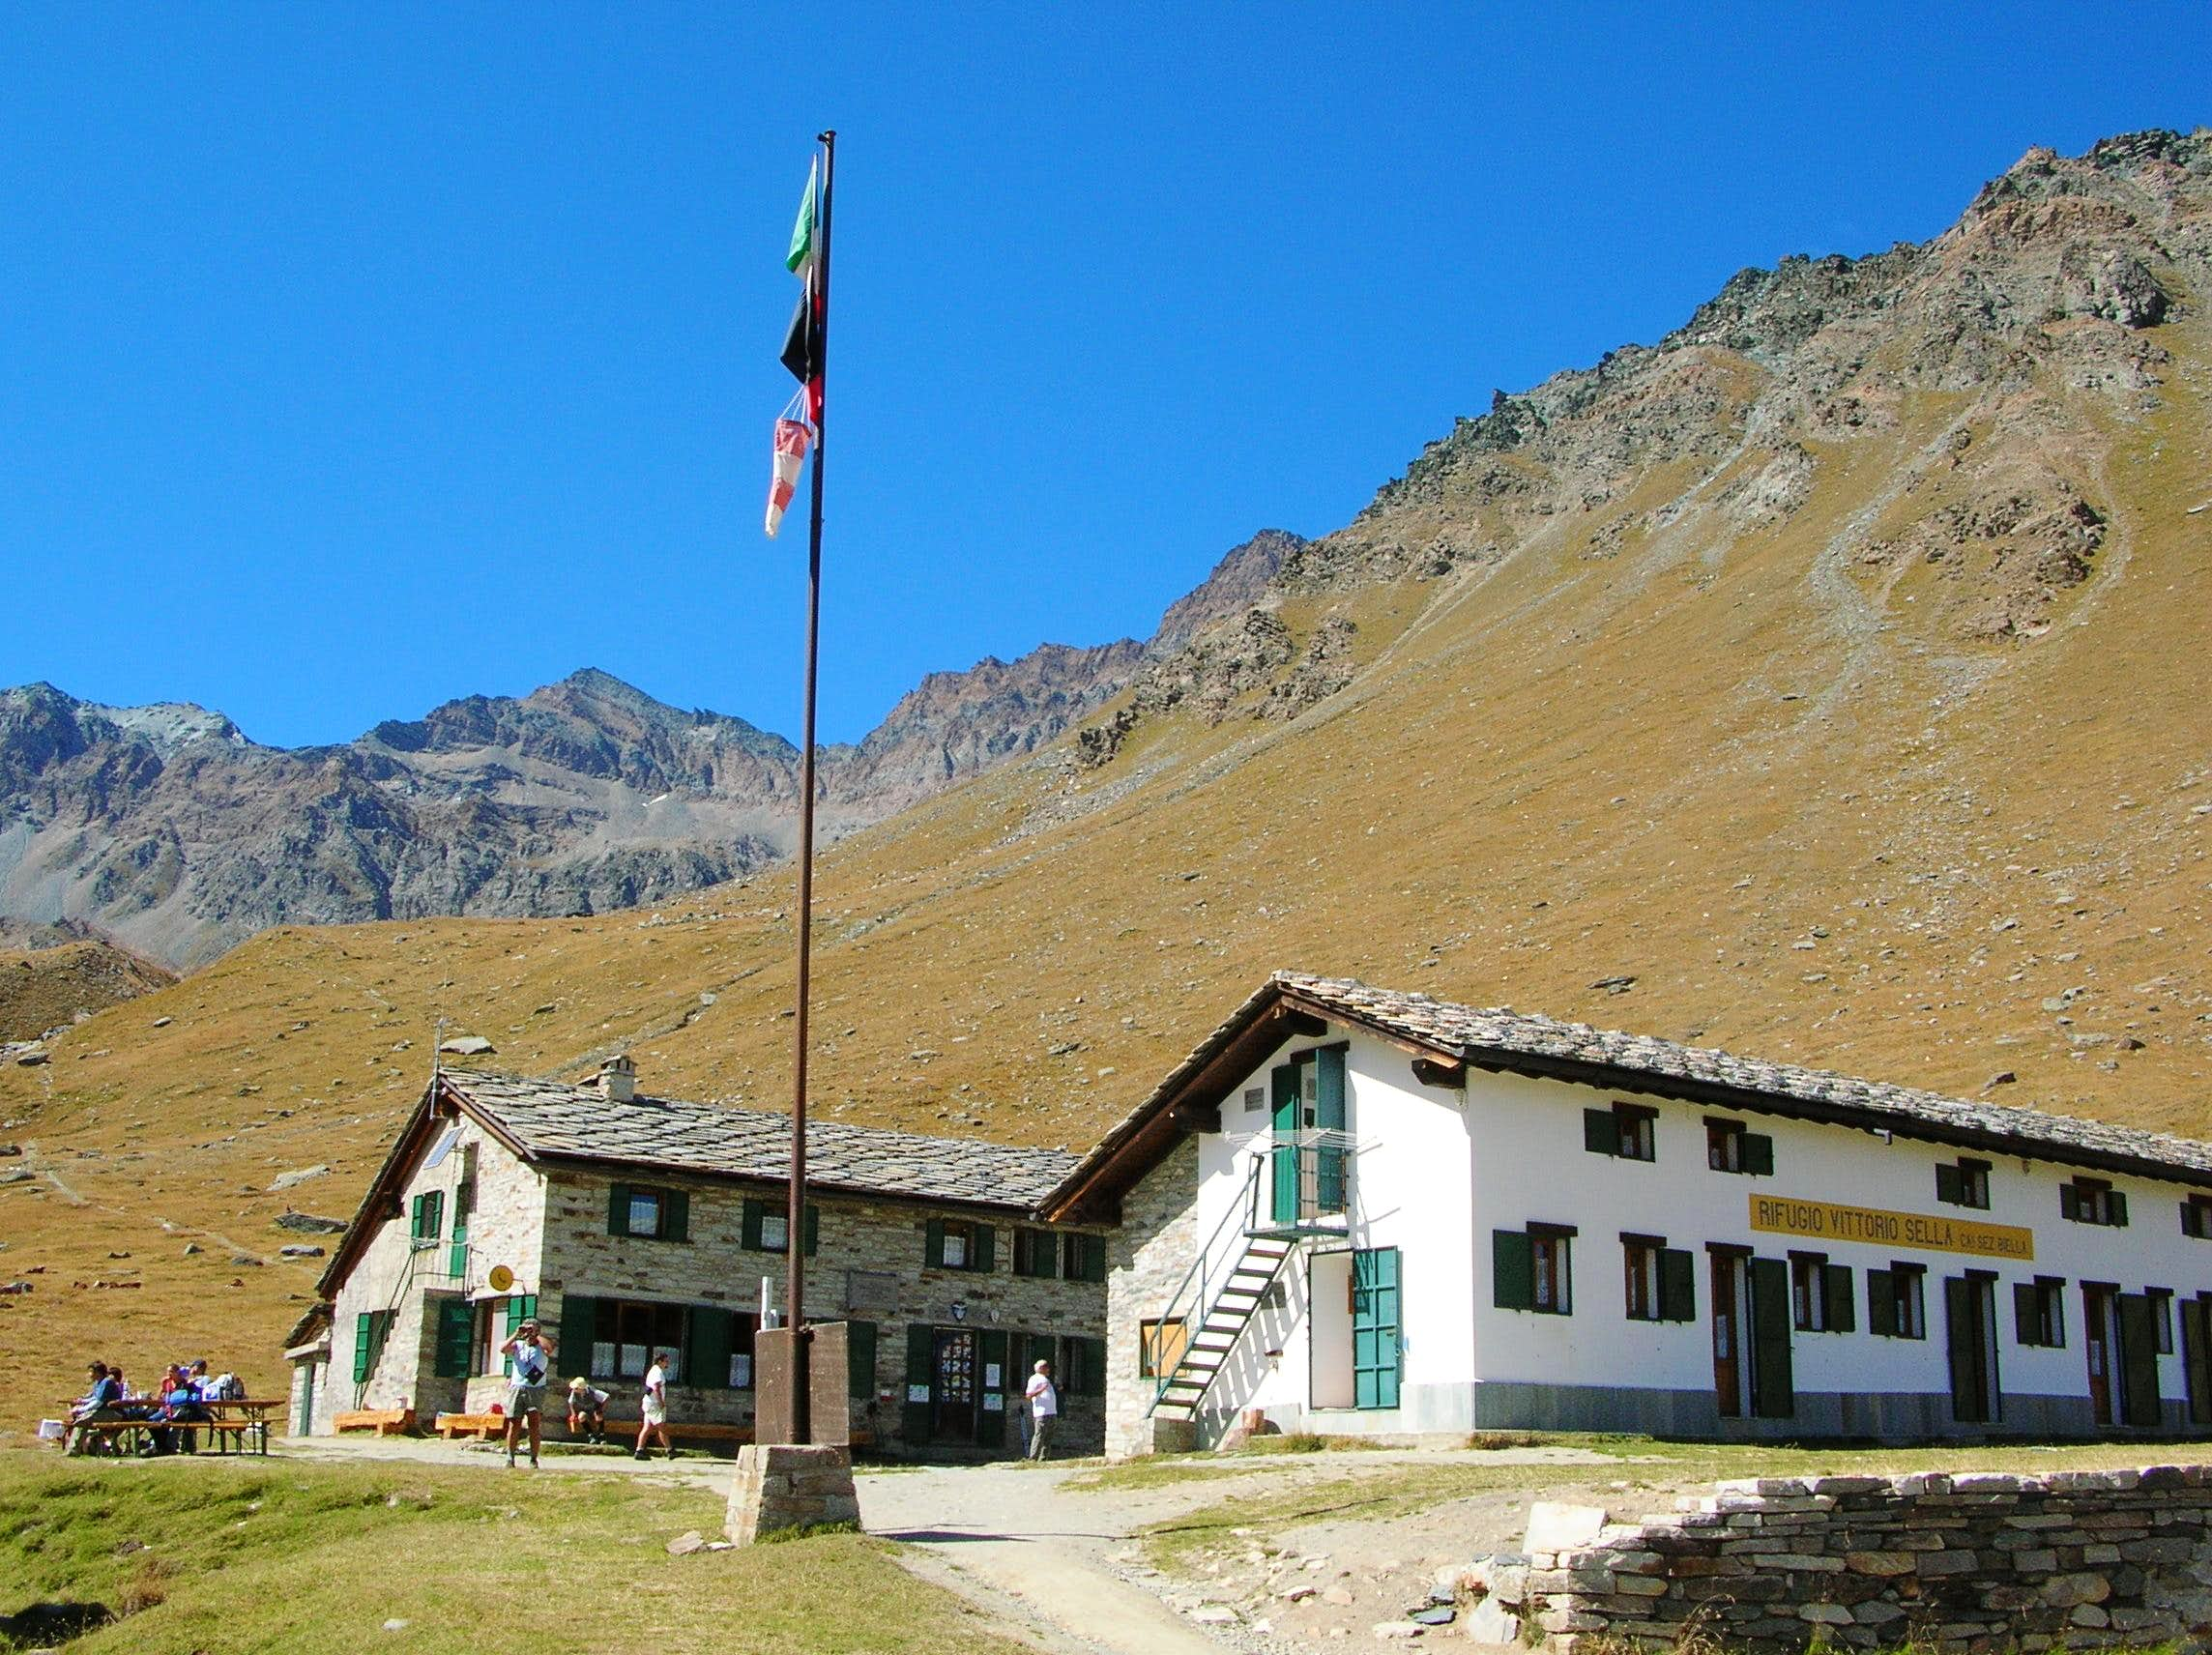 Vittorio Sella hut